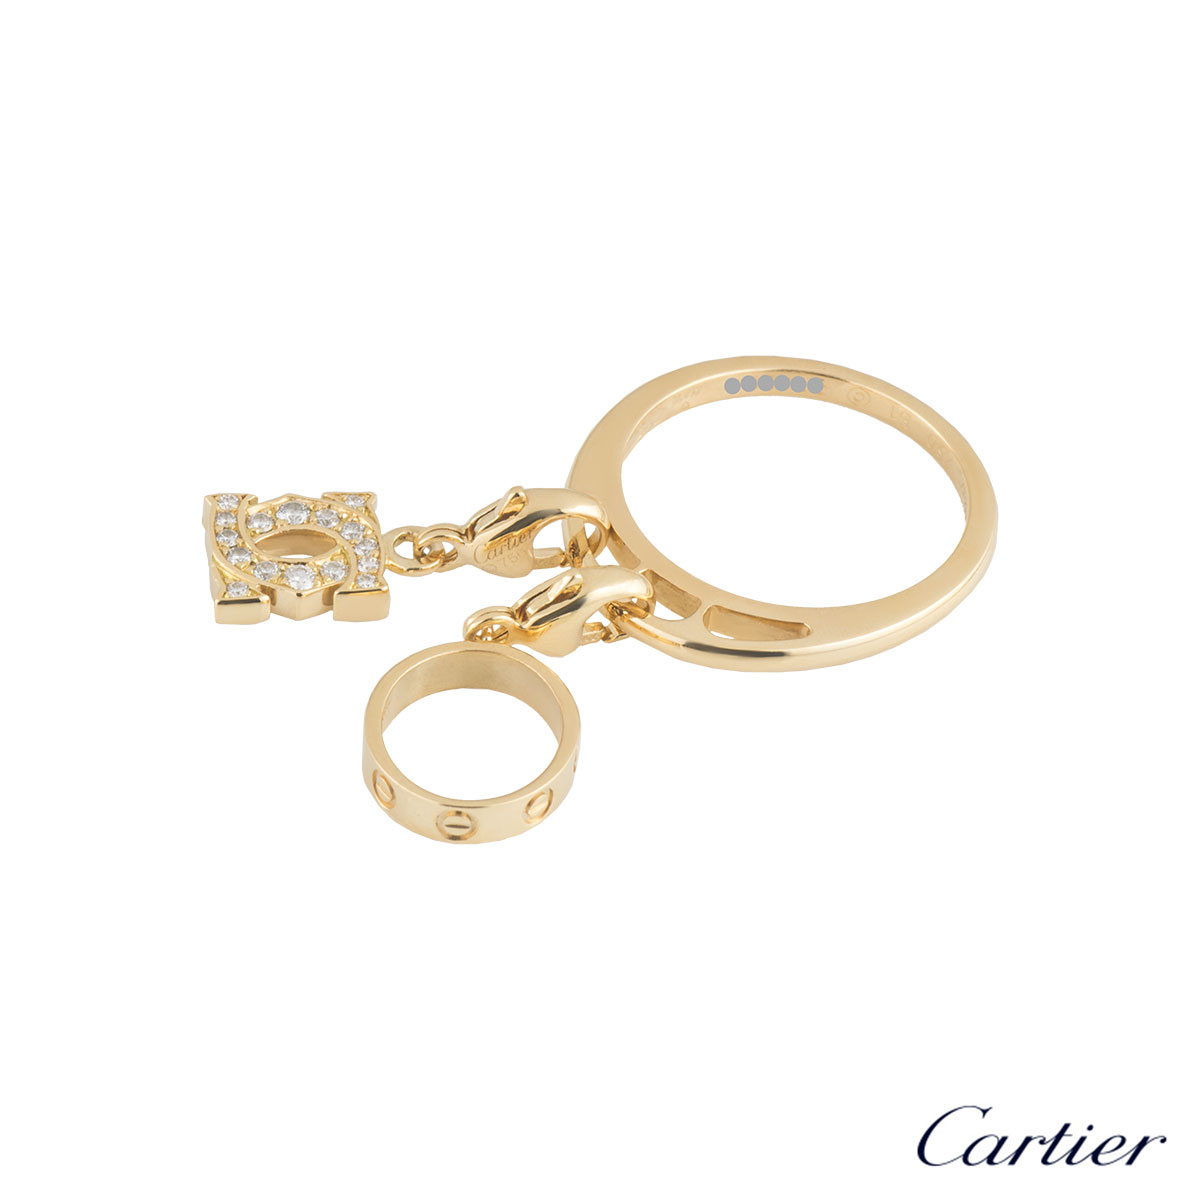 Cartier Yellow Gold Diamond Charm Ring